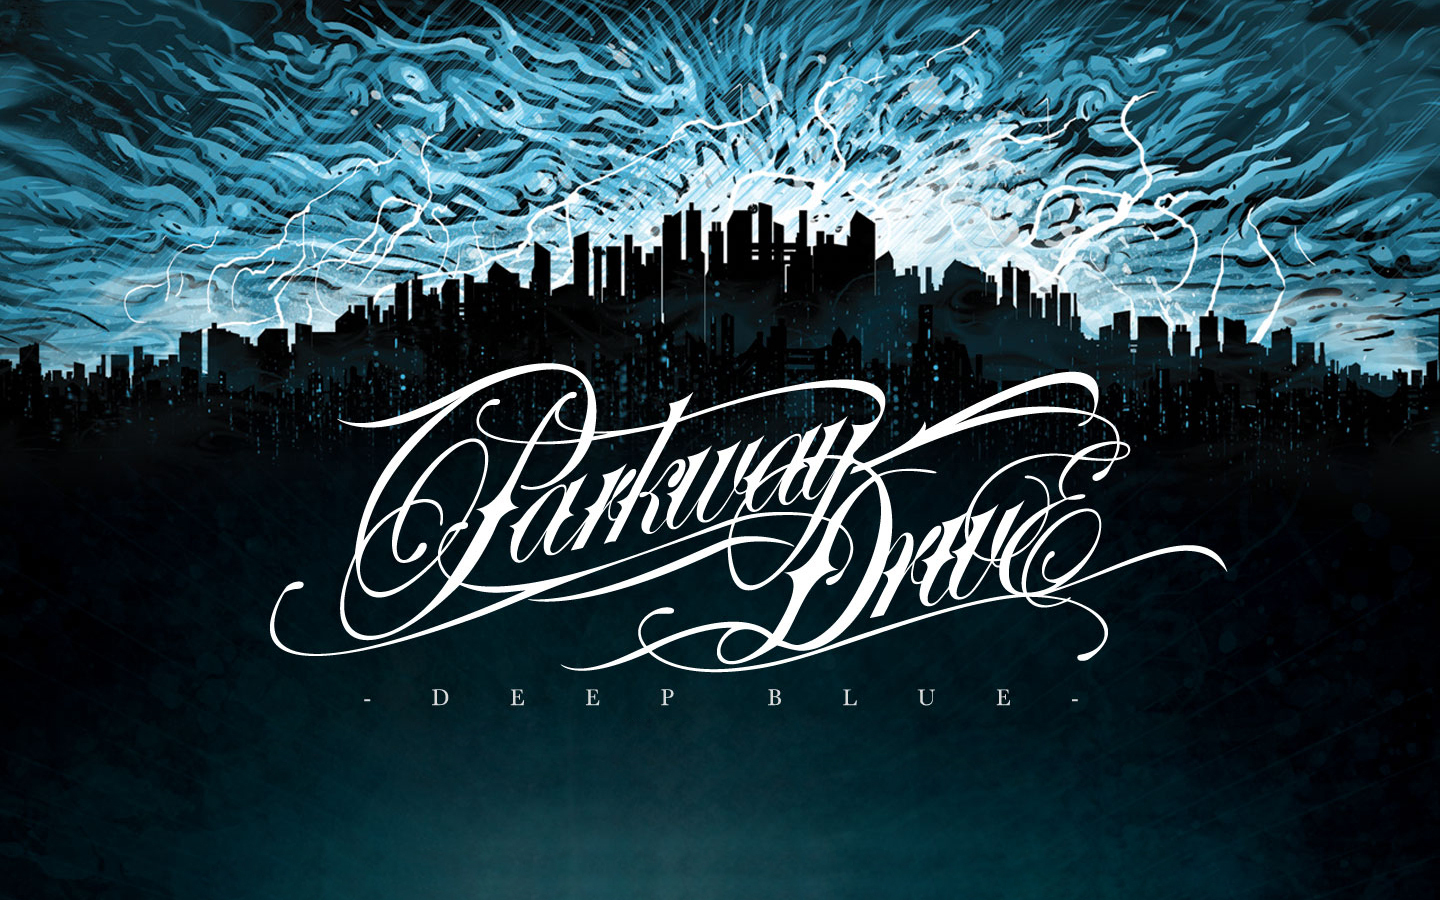 Parkway drive images deep blue hd wallpaper and background photos parkway drive images deep blue hd wallpaper and background photos voltagebd Choice Image